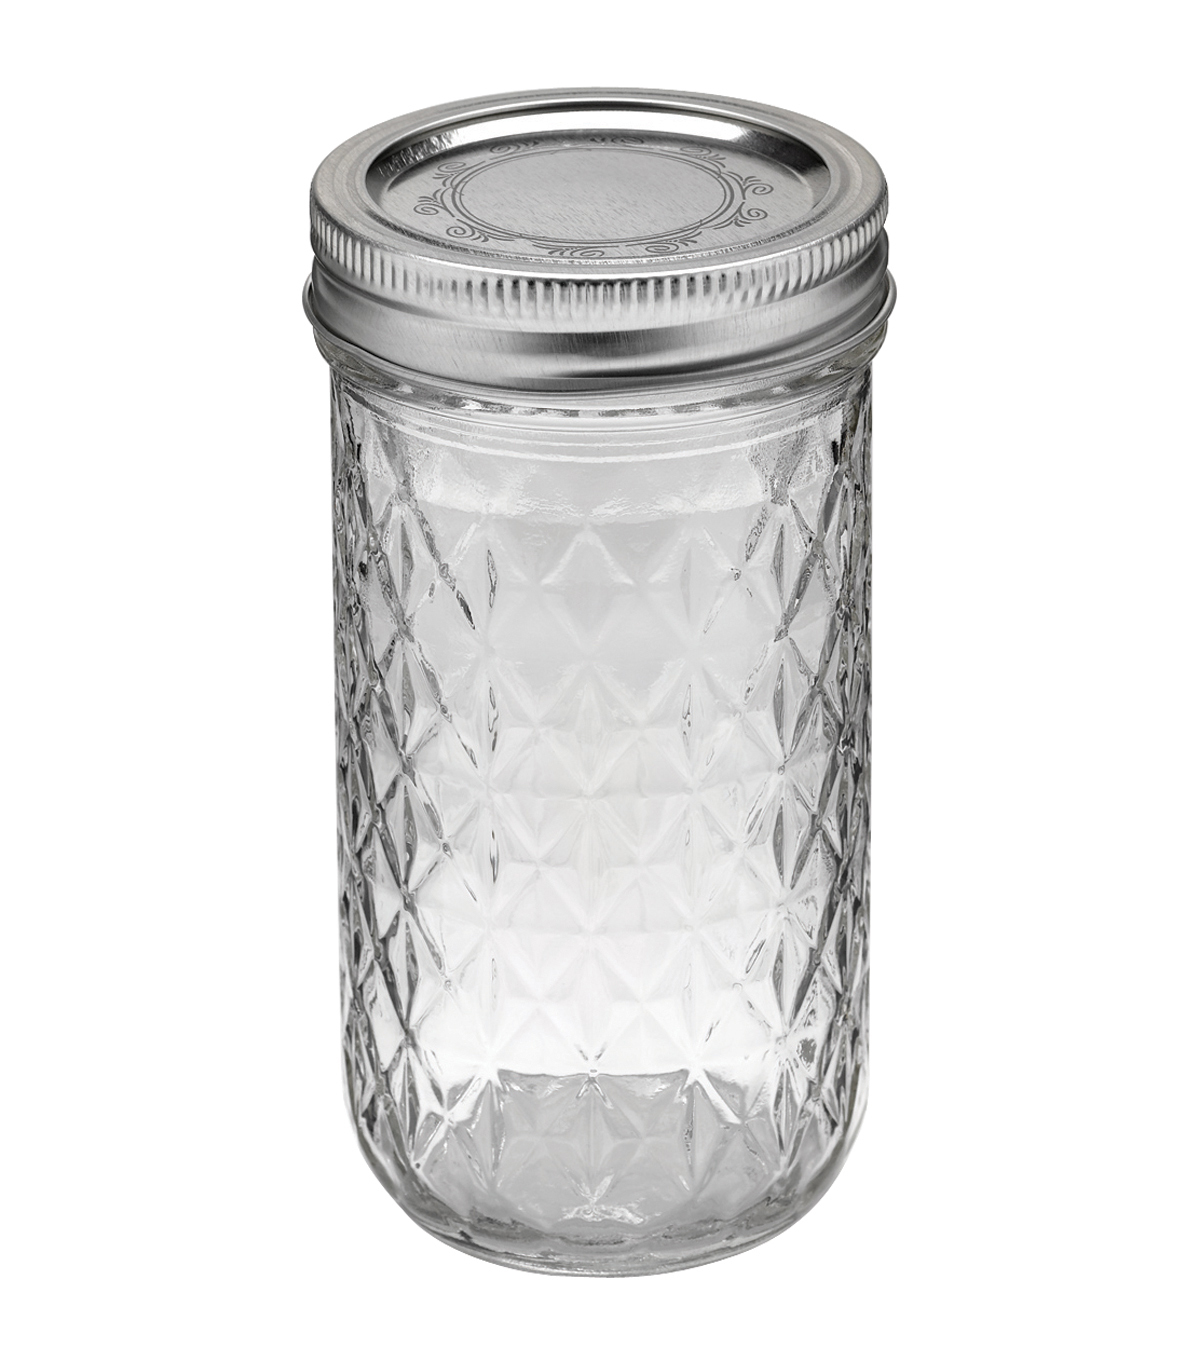 Ball Quilted Crystal Jelly Jar-12 Ounces-Case of 12 | JOANN : quilted ball - Adamdwight.com